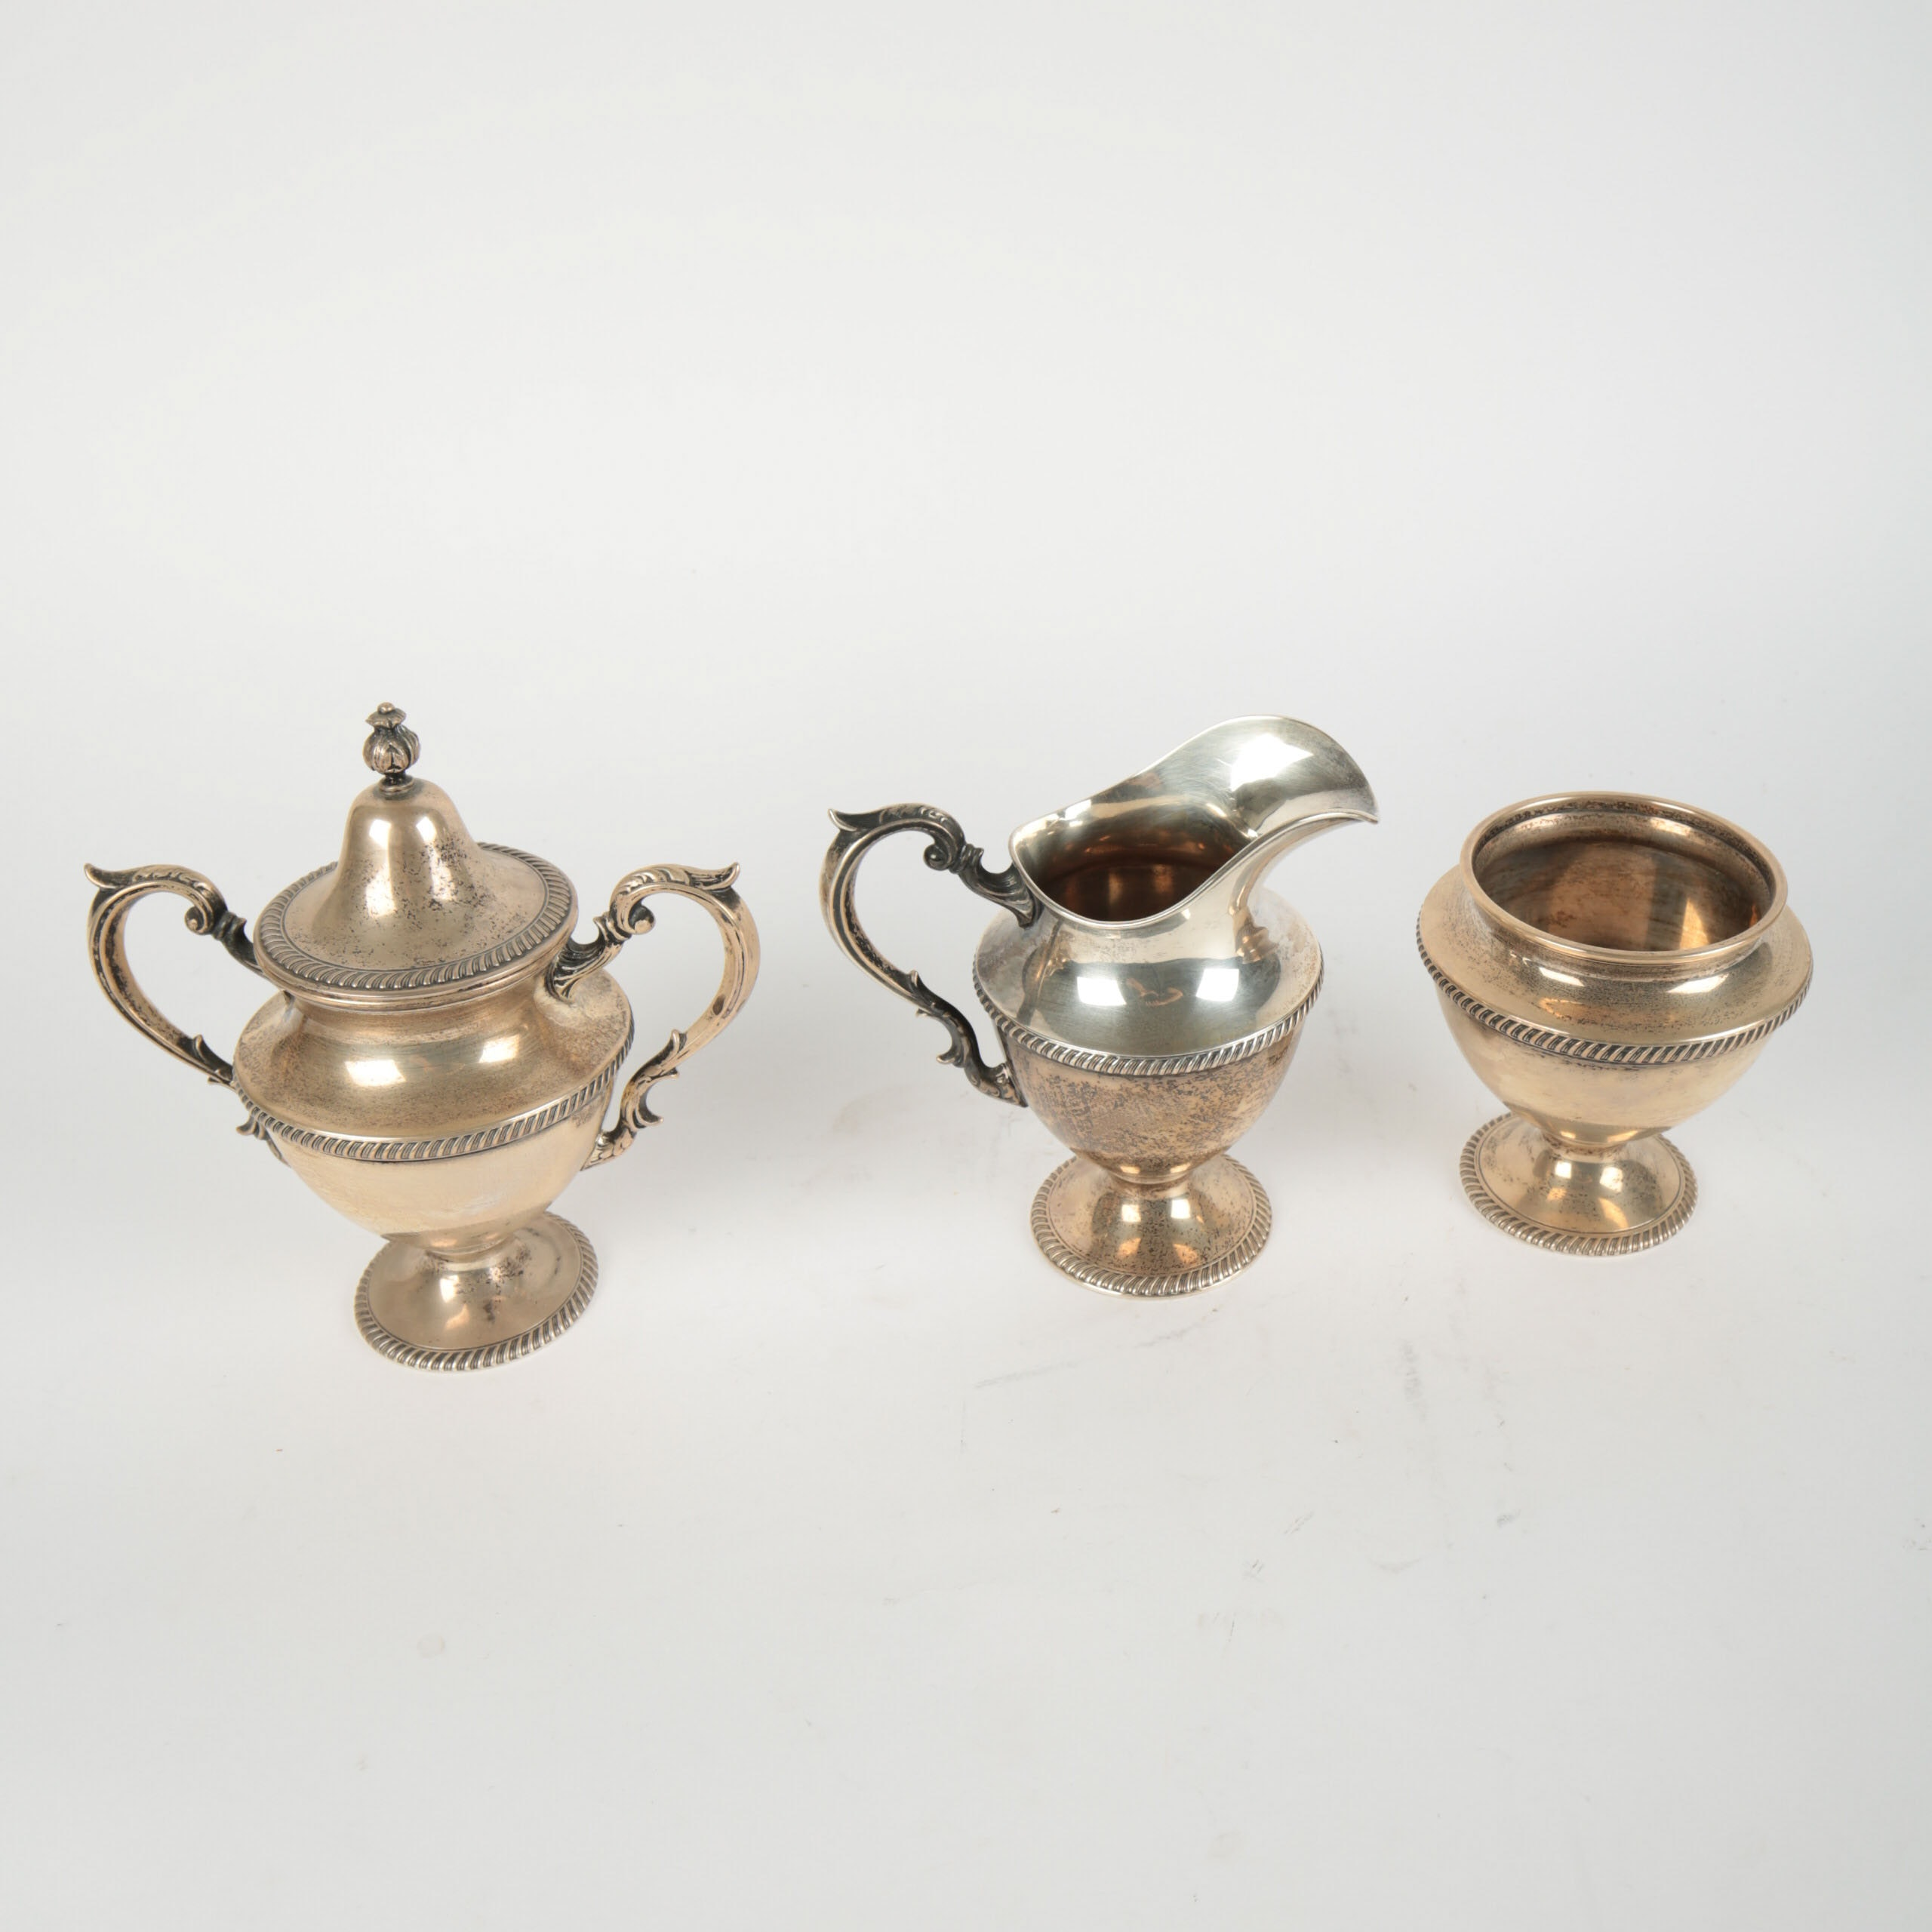 Vintage Fisher Silversmiths Inc. Sterling Silver Tea Service Pieces